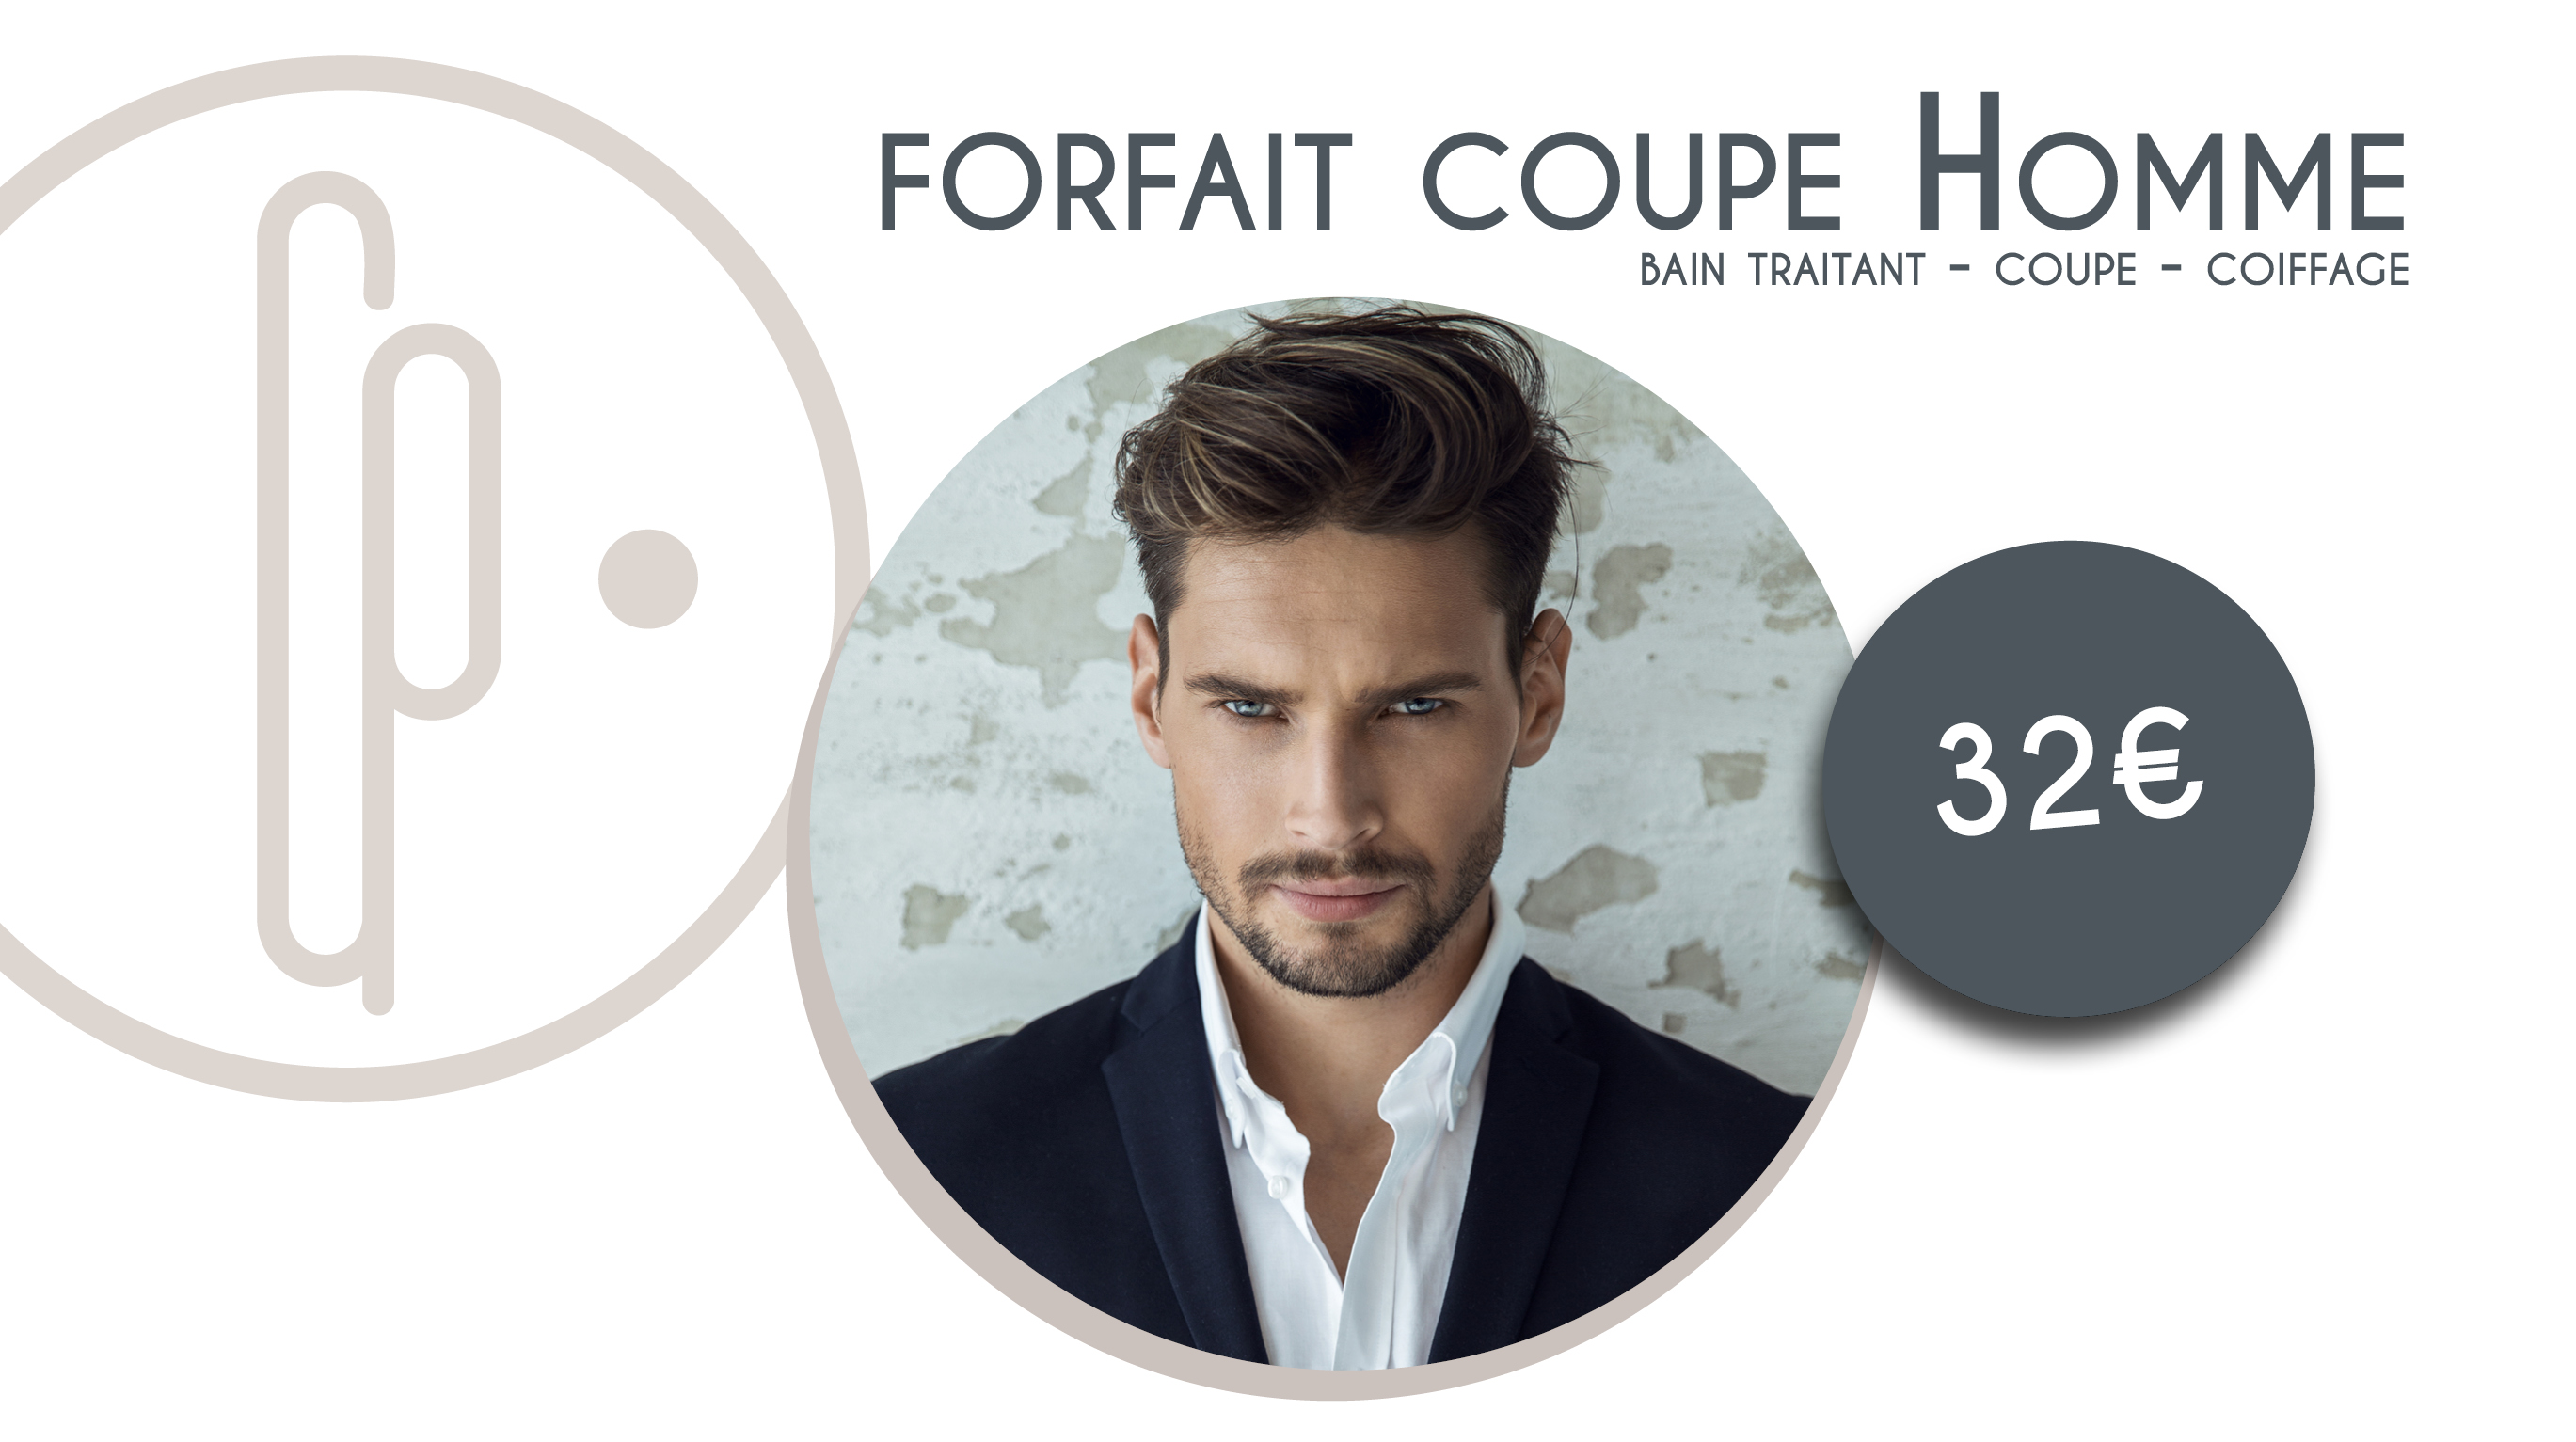 Forfait Coupe Homme